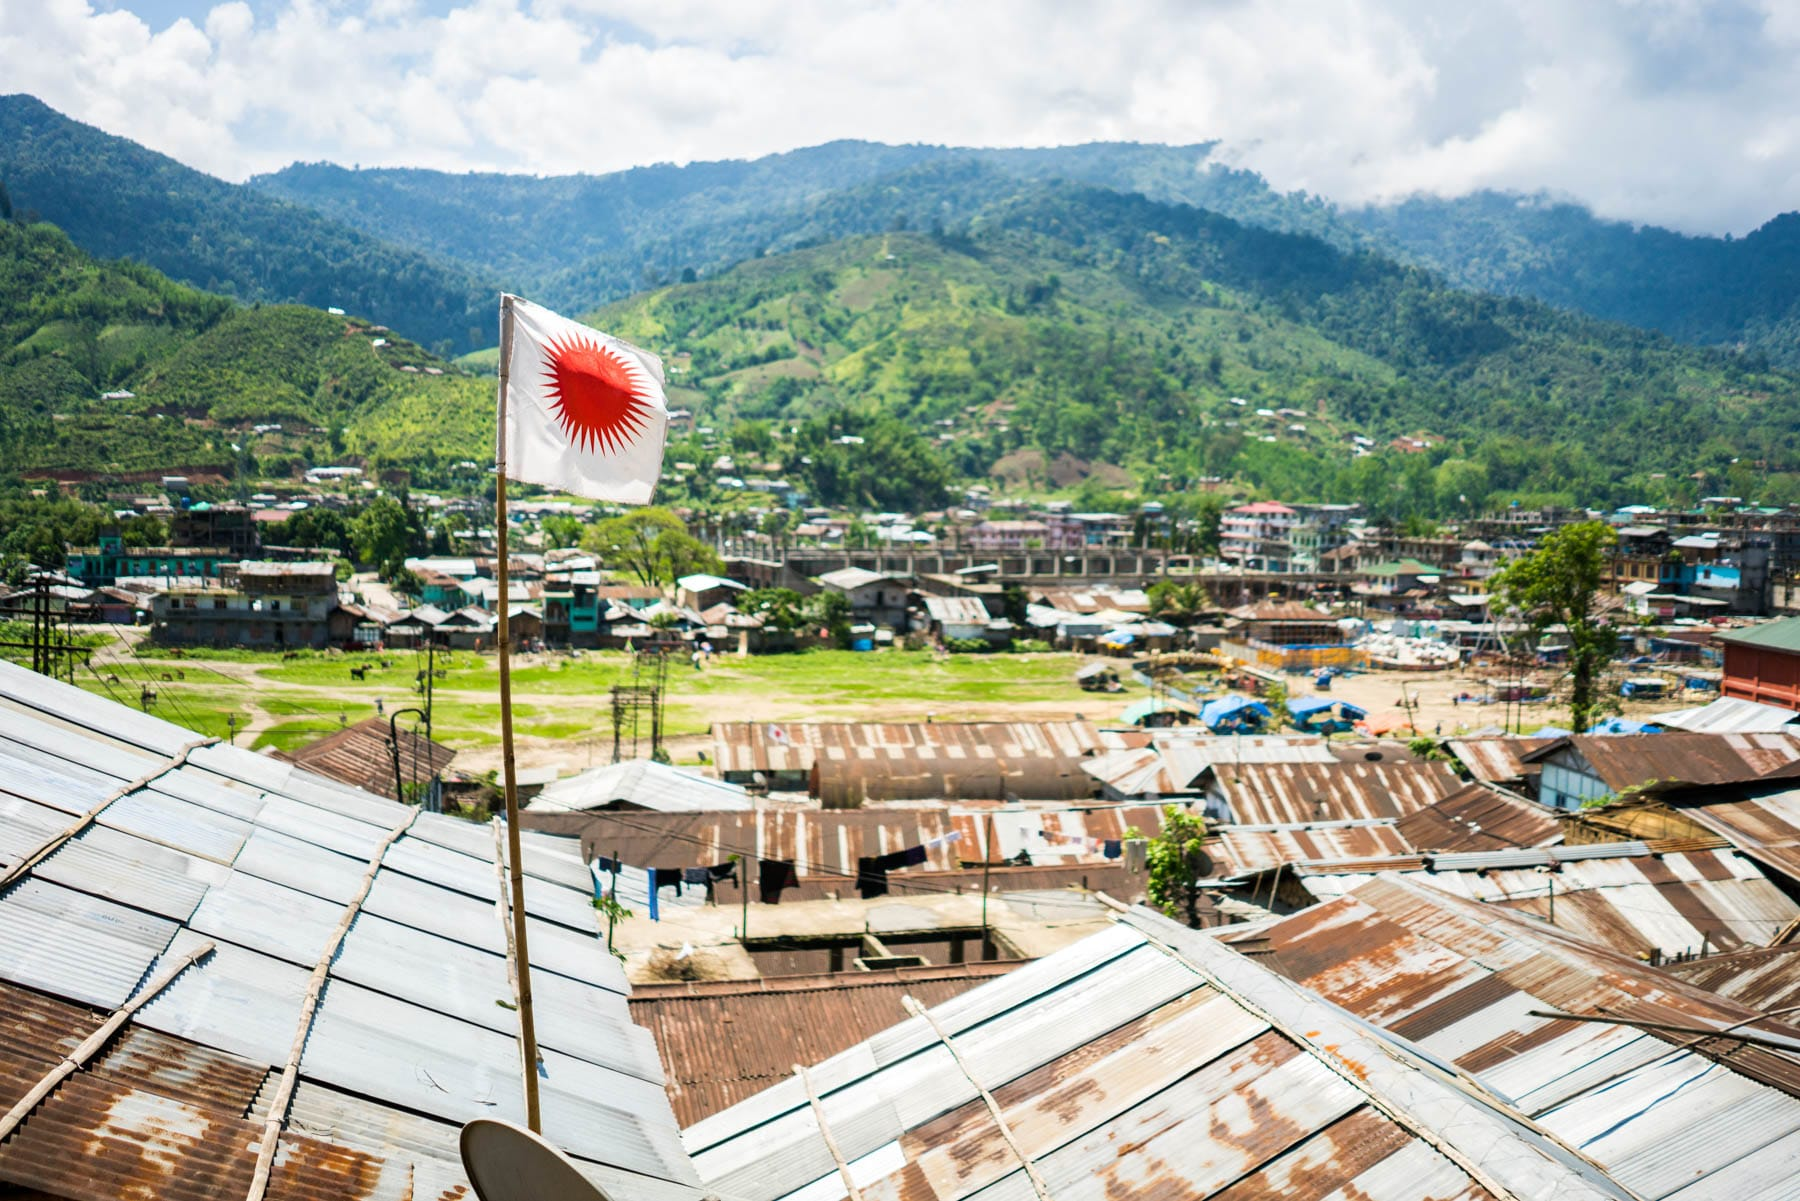 Backpacking in Arunachal Pradesh travel guide - Donyi Polo flag in Daporijo - Lost With Purpose